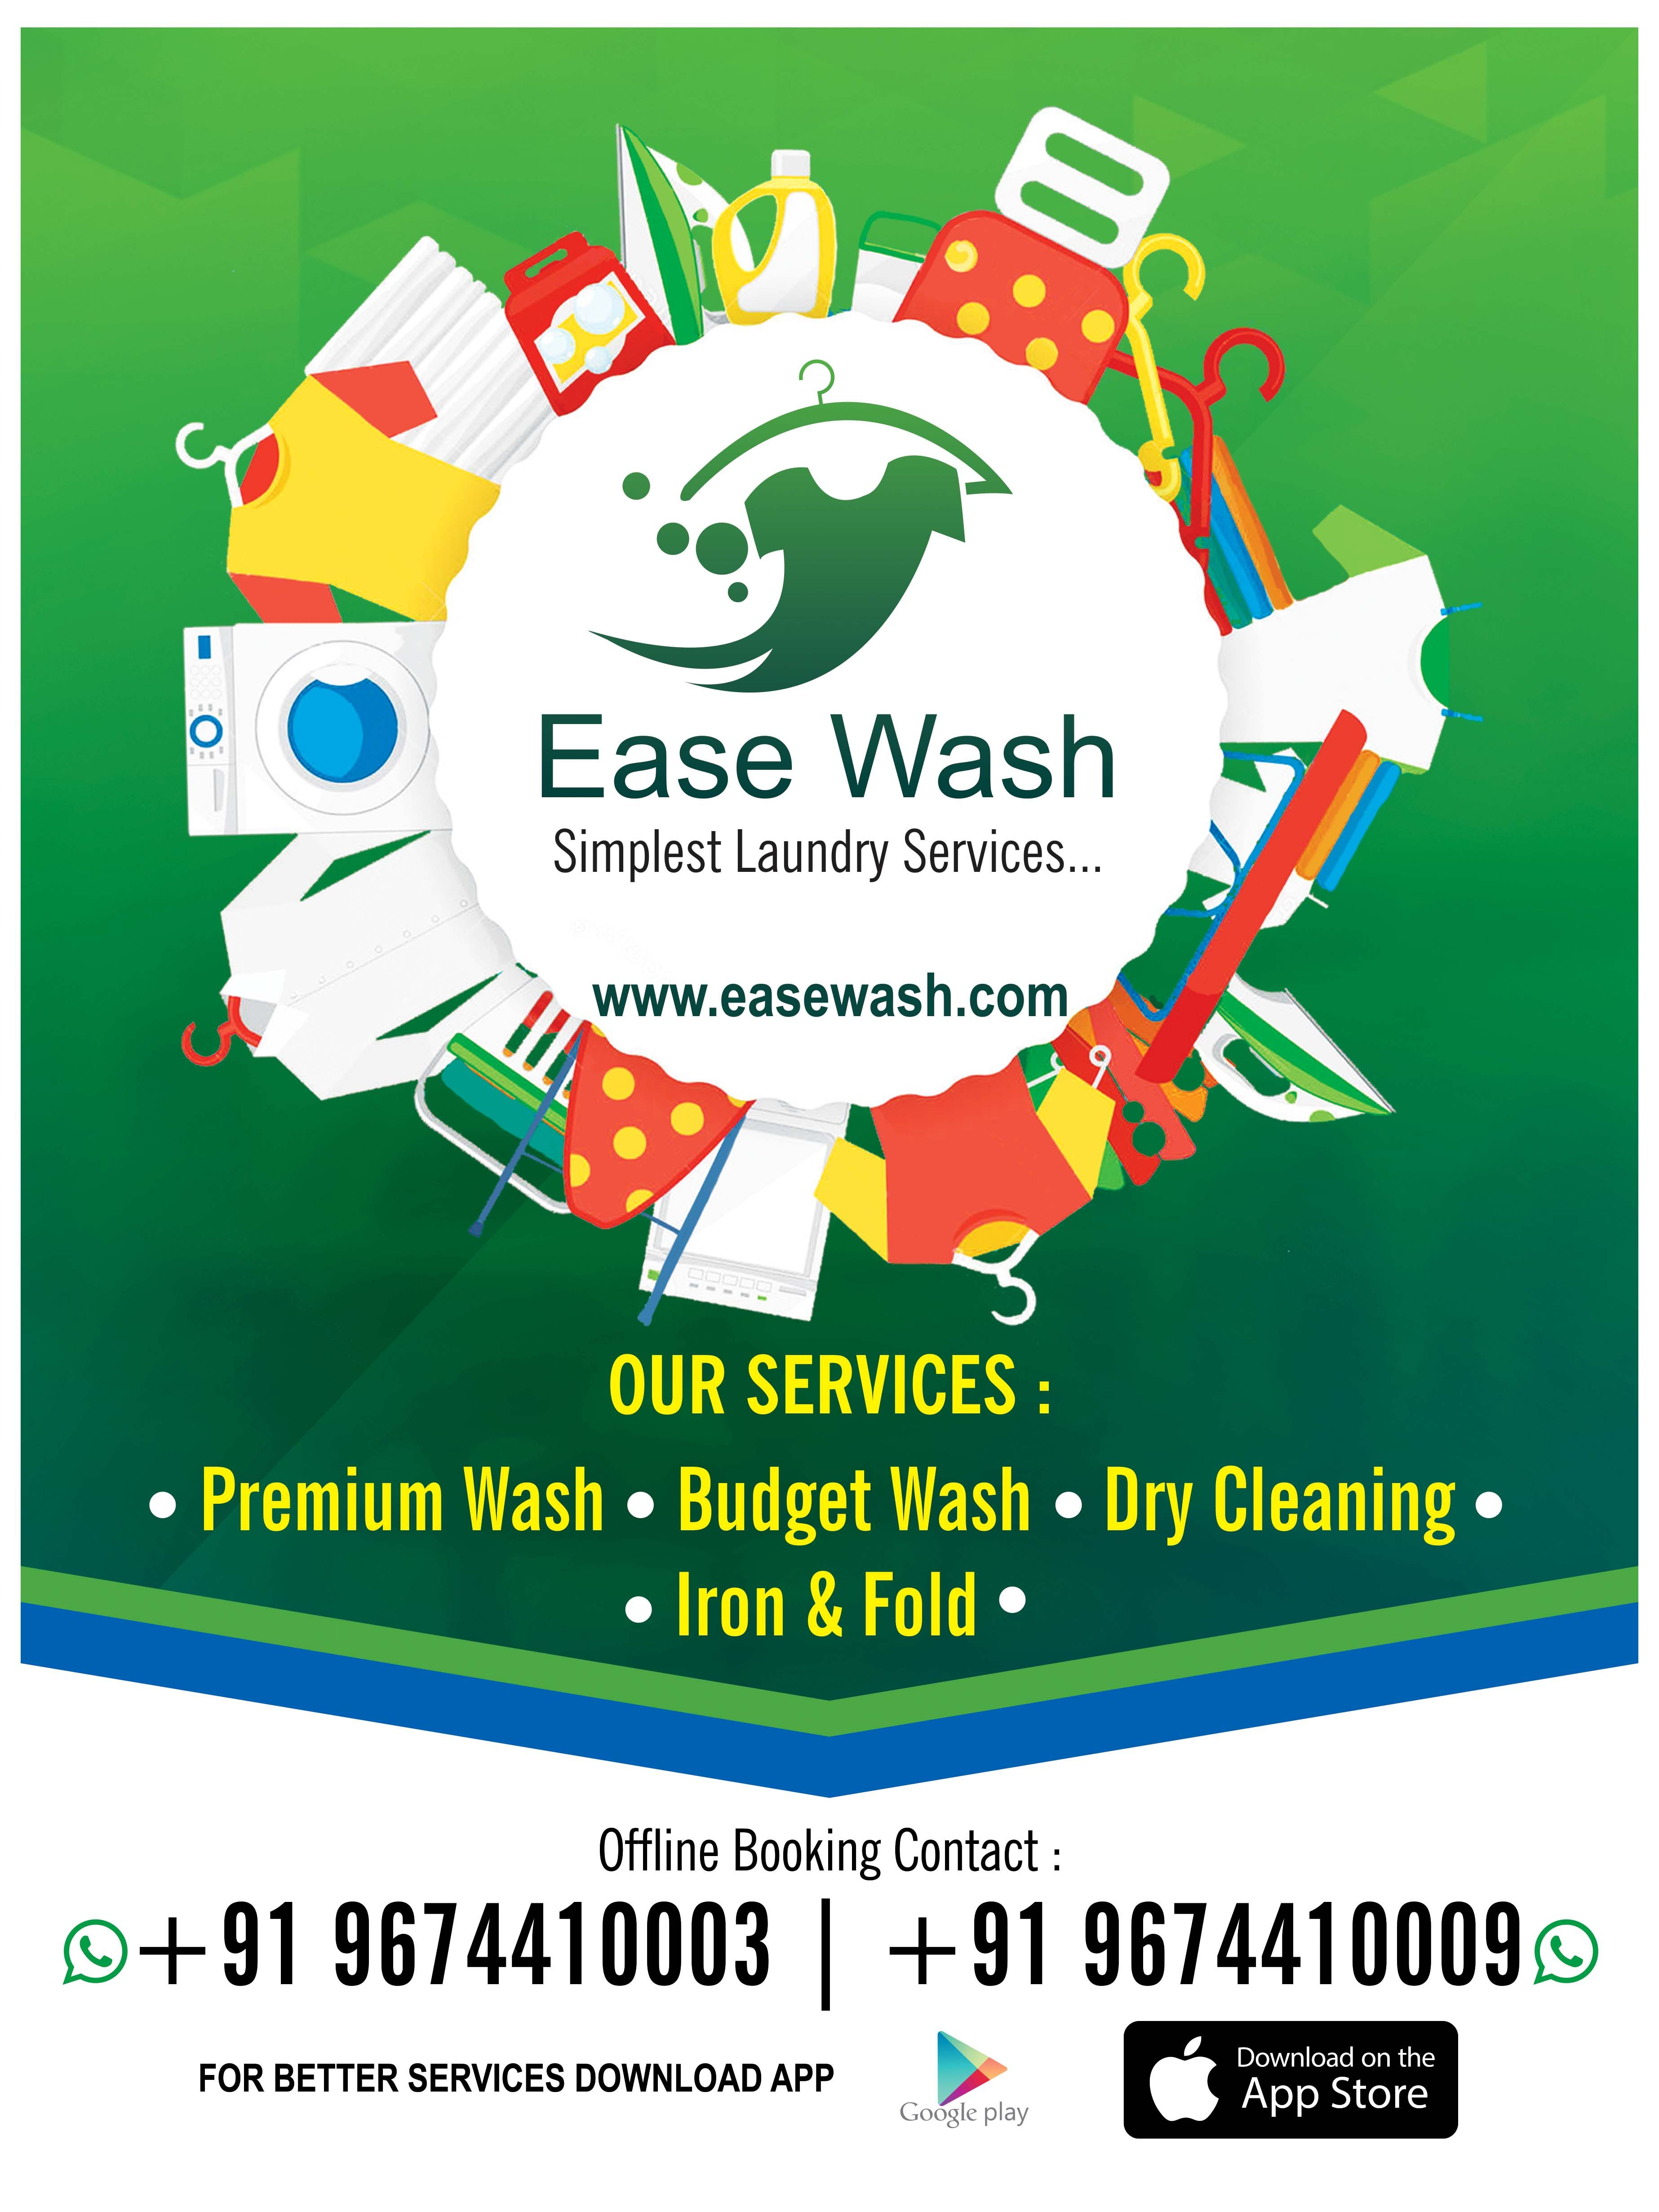 Dry Cleaning Wash Fold Iron Fold Laundry Service In Kolkata Ease Wash Laundry Services Pvt L Laundry Service Online Laundry Service Online Laundry